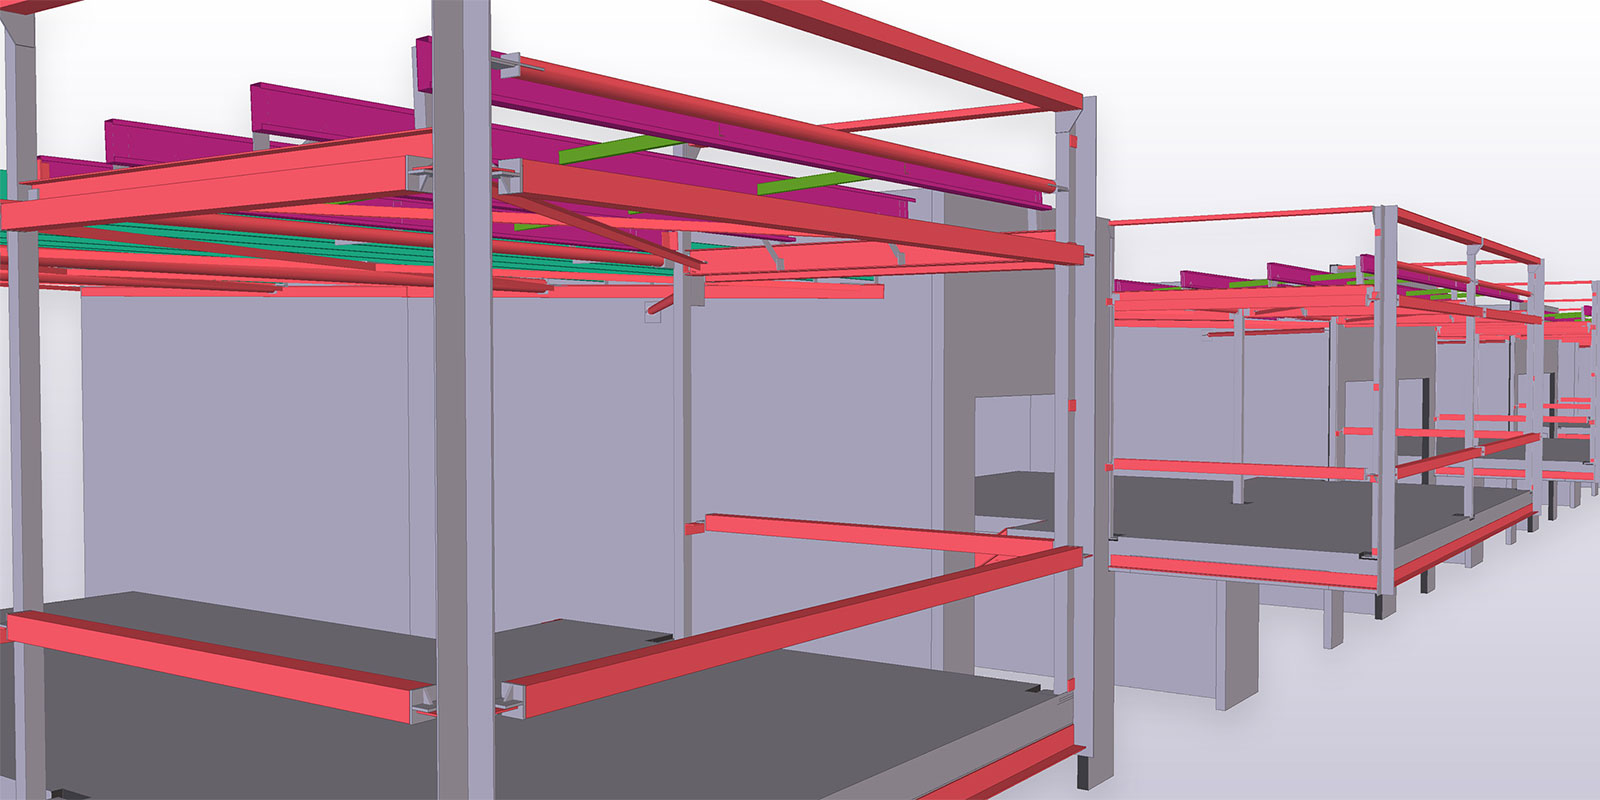 Tekla's quality information output supports fabrication automation throughout the process.